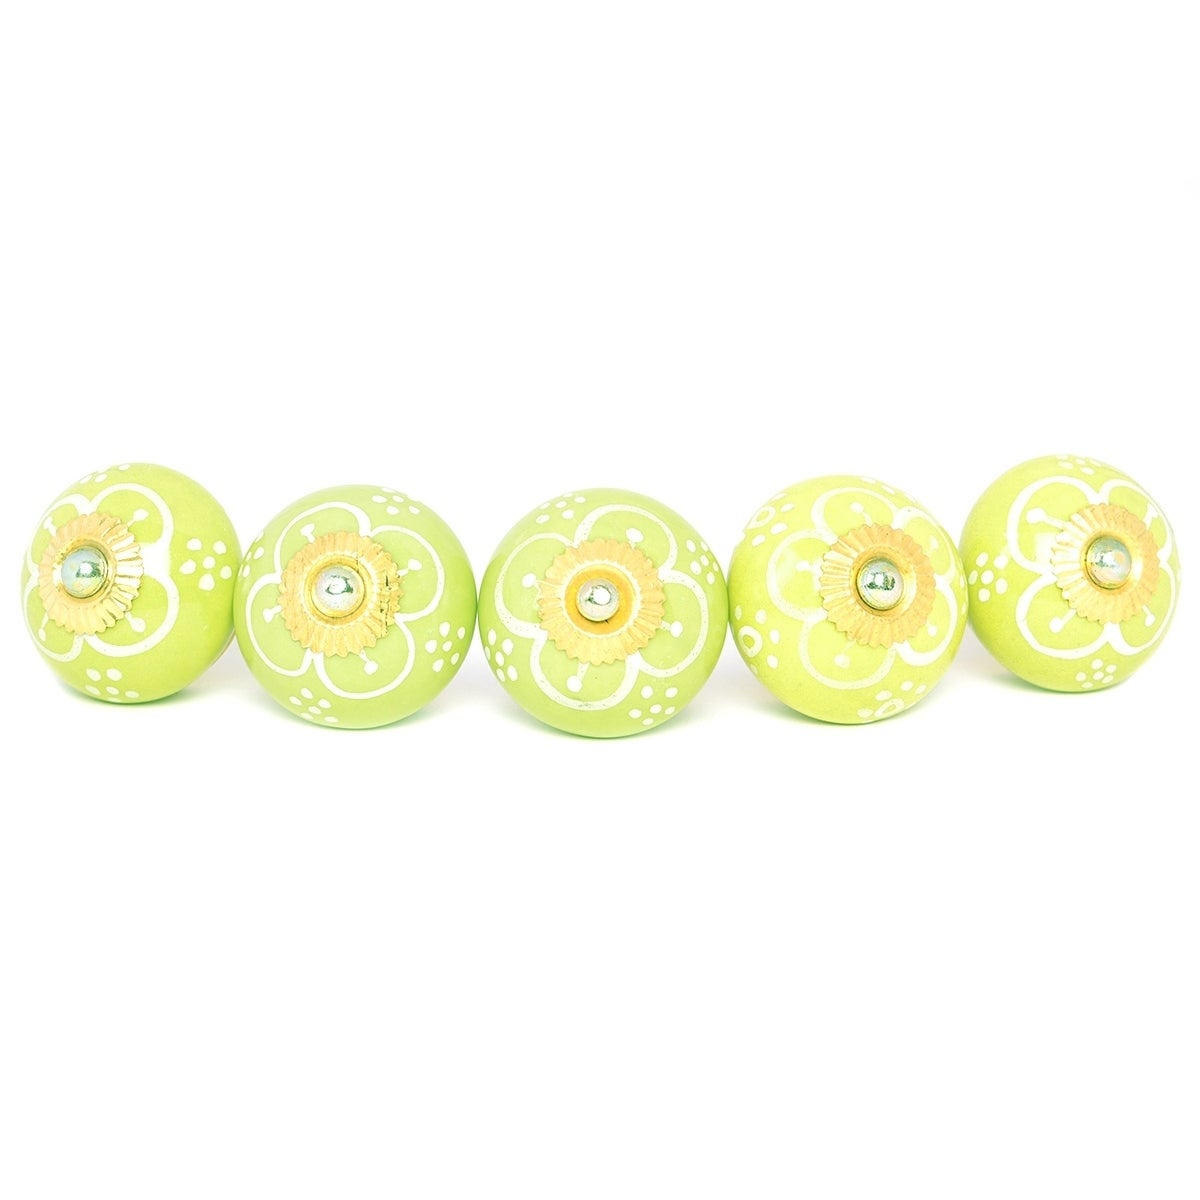 Parrot Green Ceramic Door Knob Sets Package Cabinet Drawer Pull Handles Furniture Decor Lots Set (light green#08)